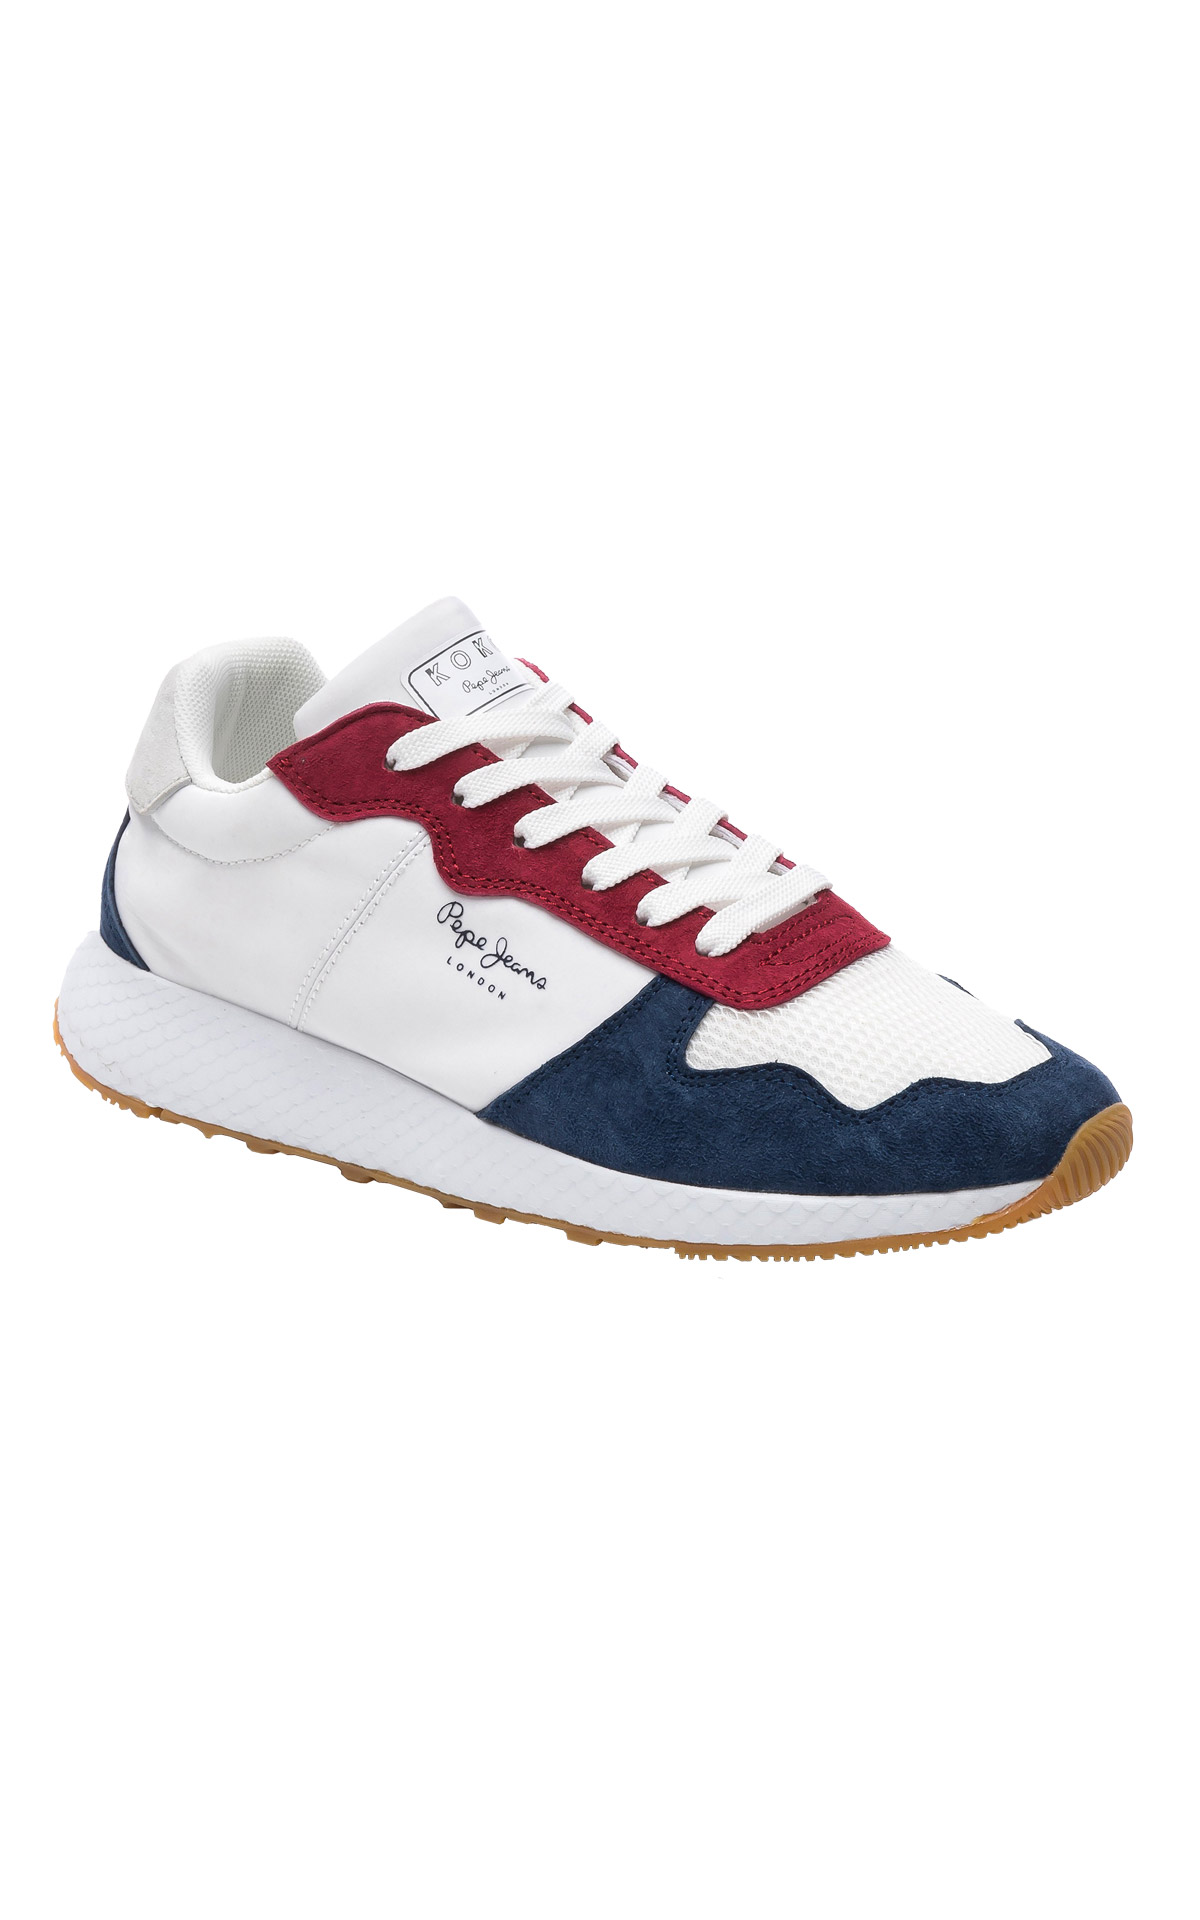 White, red and blue sneakers man Pepe Jeans